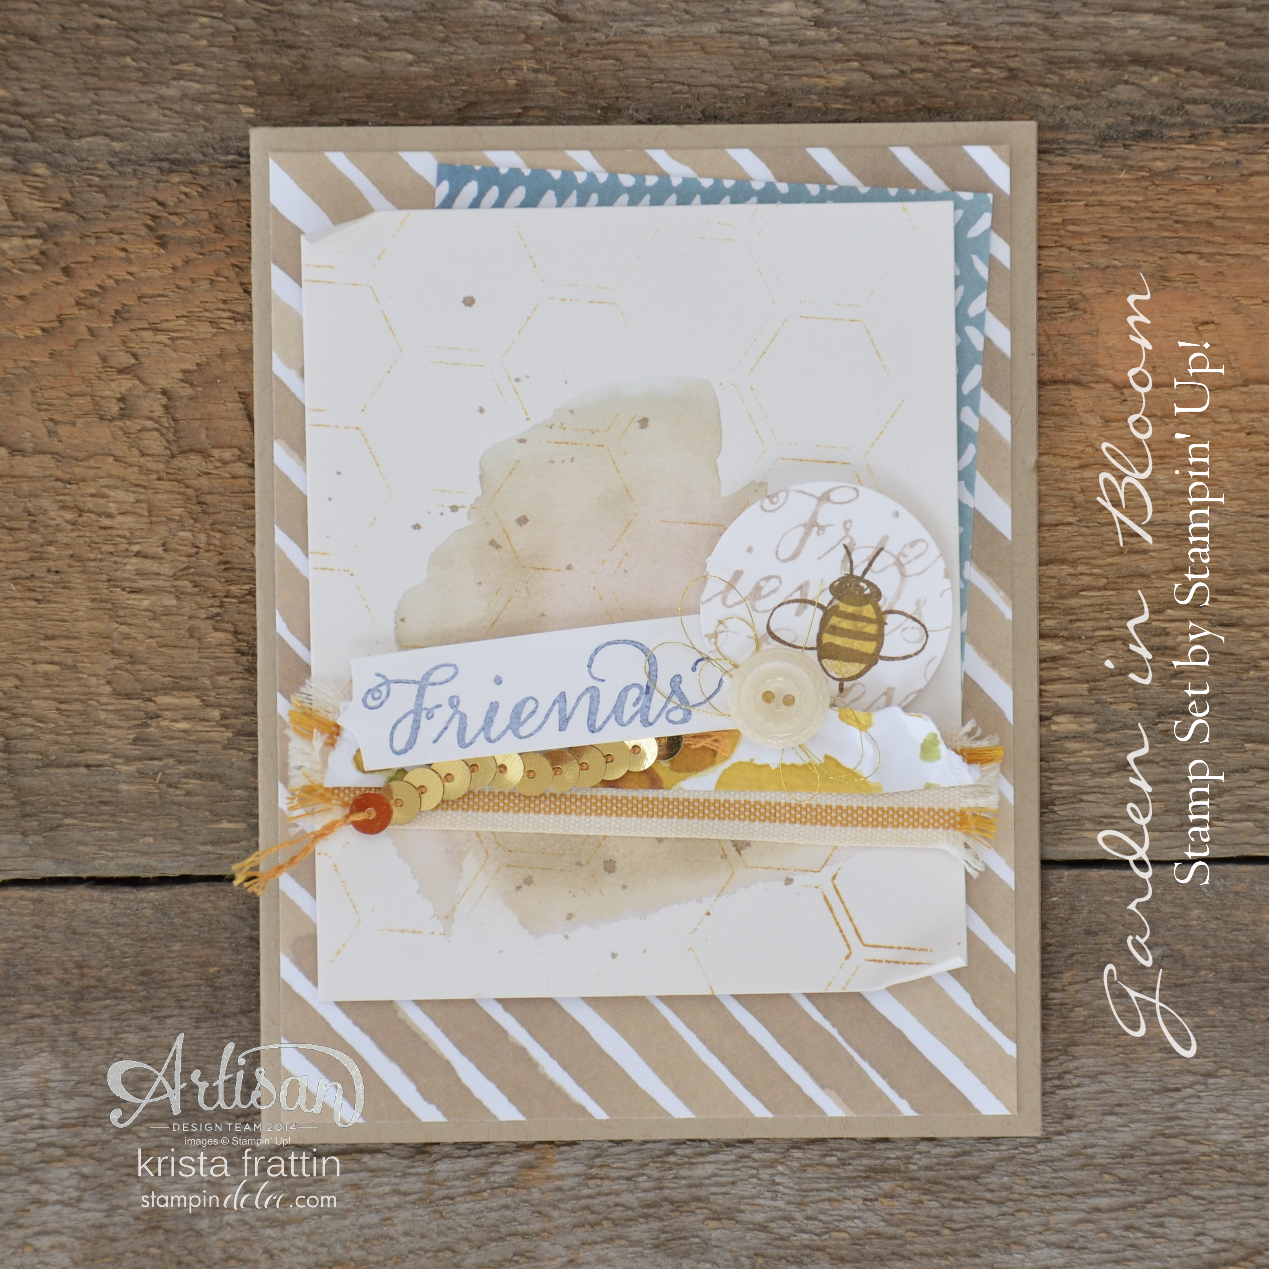 ... Artisan Box. I Have Used It A Couple Of Times Now. (You May Remember  The Post About My Party Decor For My Demonstrator Team). This Week I Have  An Adorbs ...